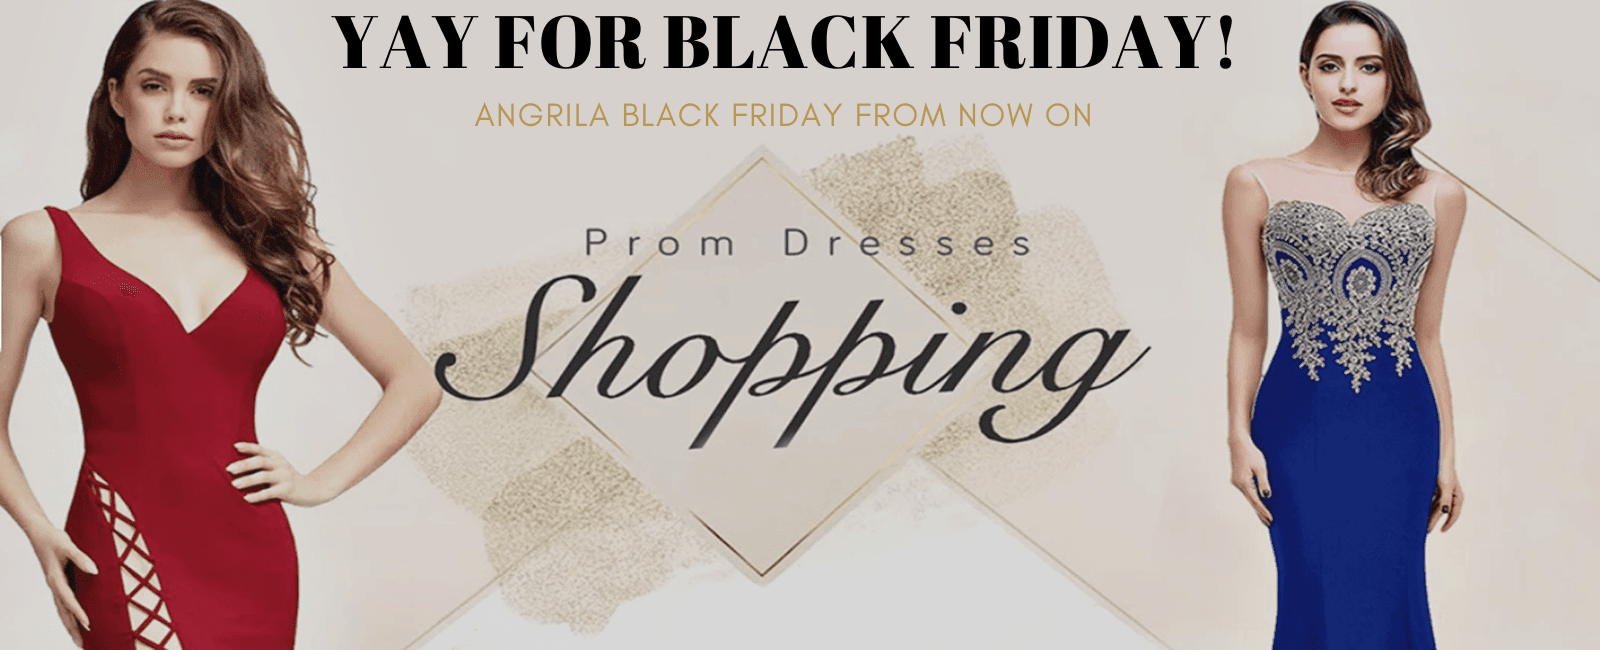 Where To Purchase Prom Dresses During Black Friday Infinitely Posh